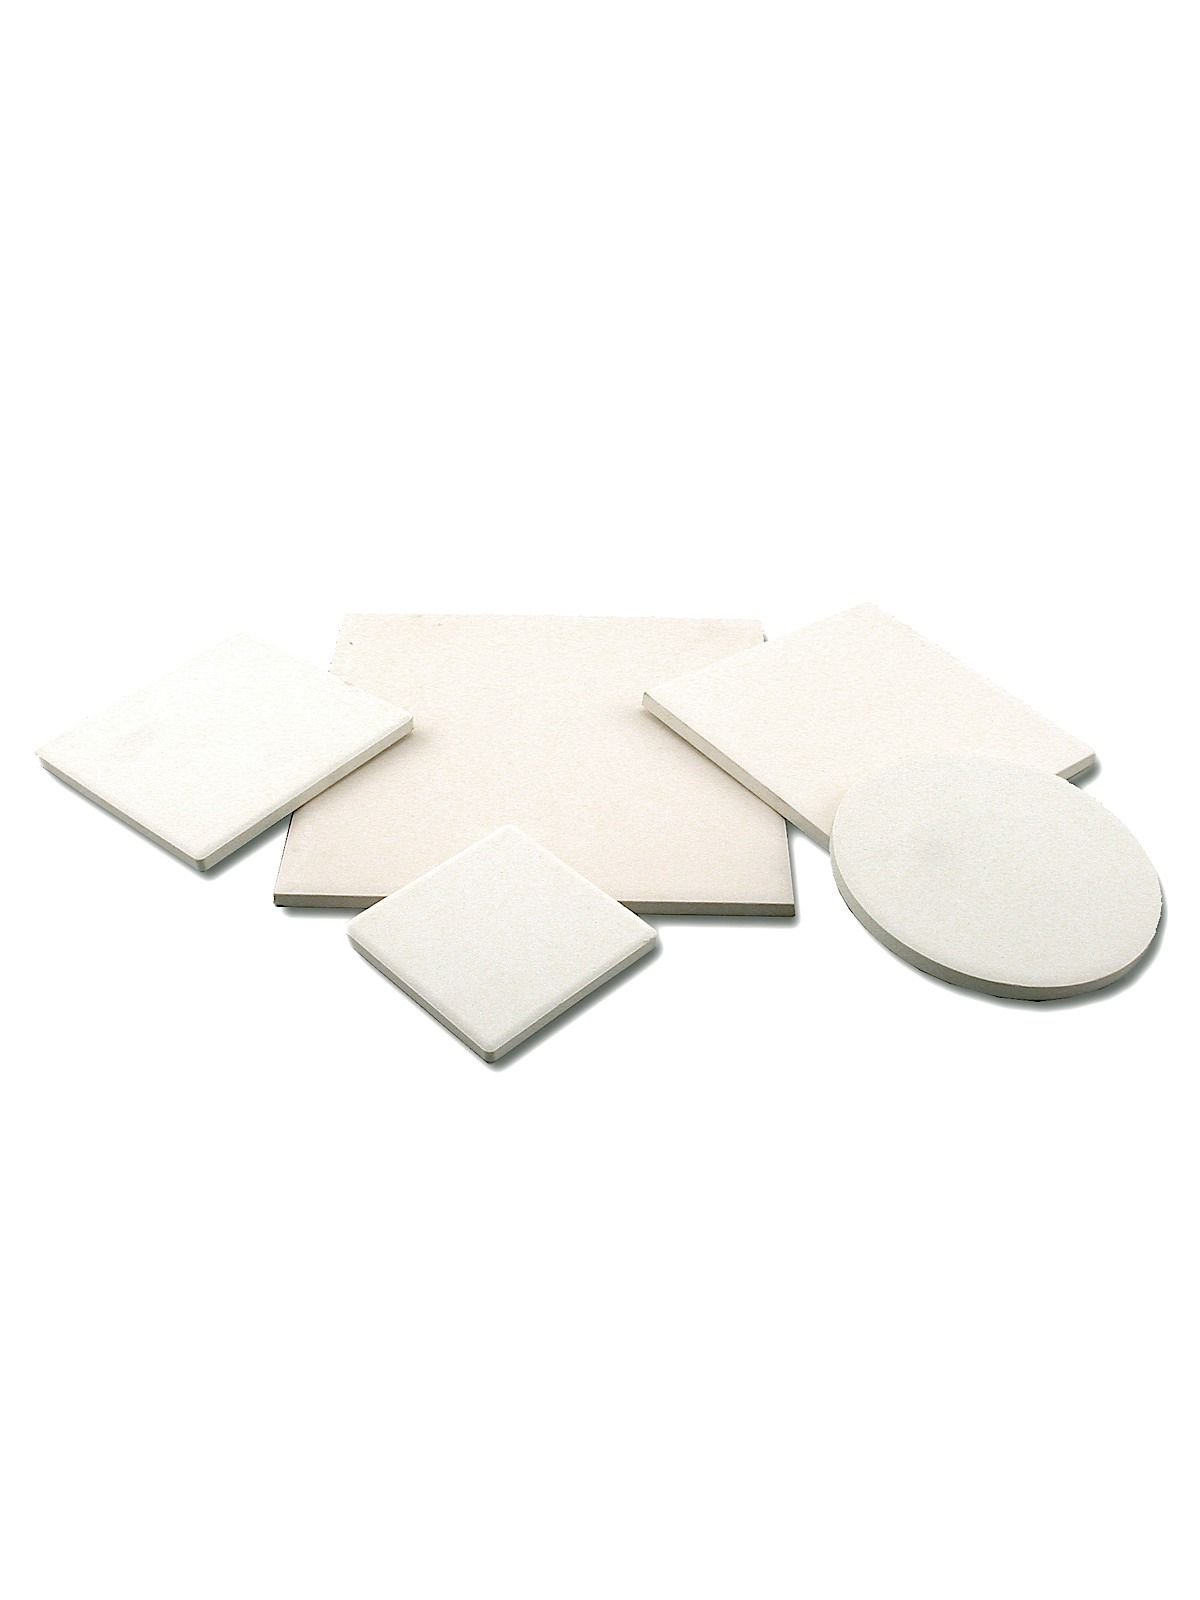 Ceramic bisque tile create new additions to your kitchen or ceramic bisque tile create new additions to your kitchen or bathroom with dailygadgetfo Choice Image